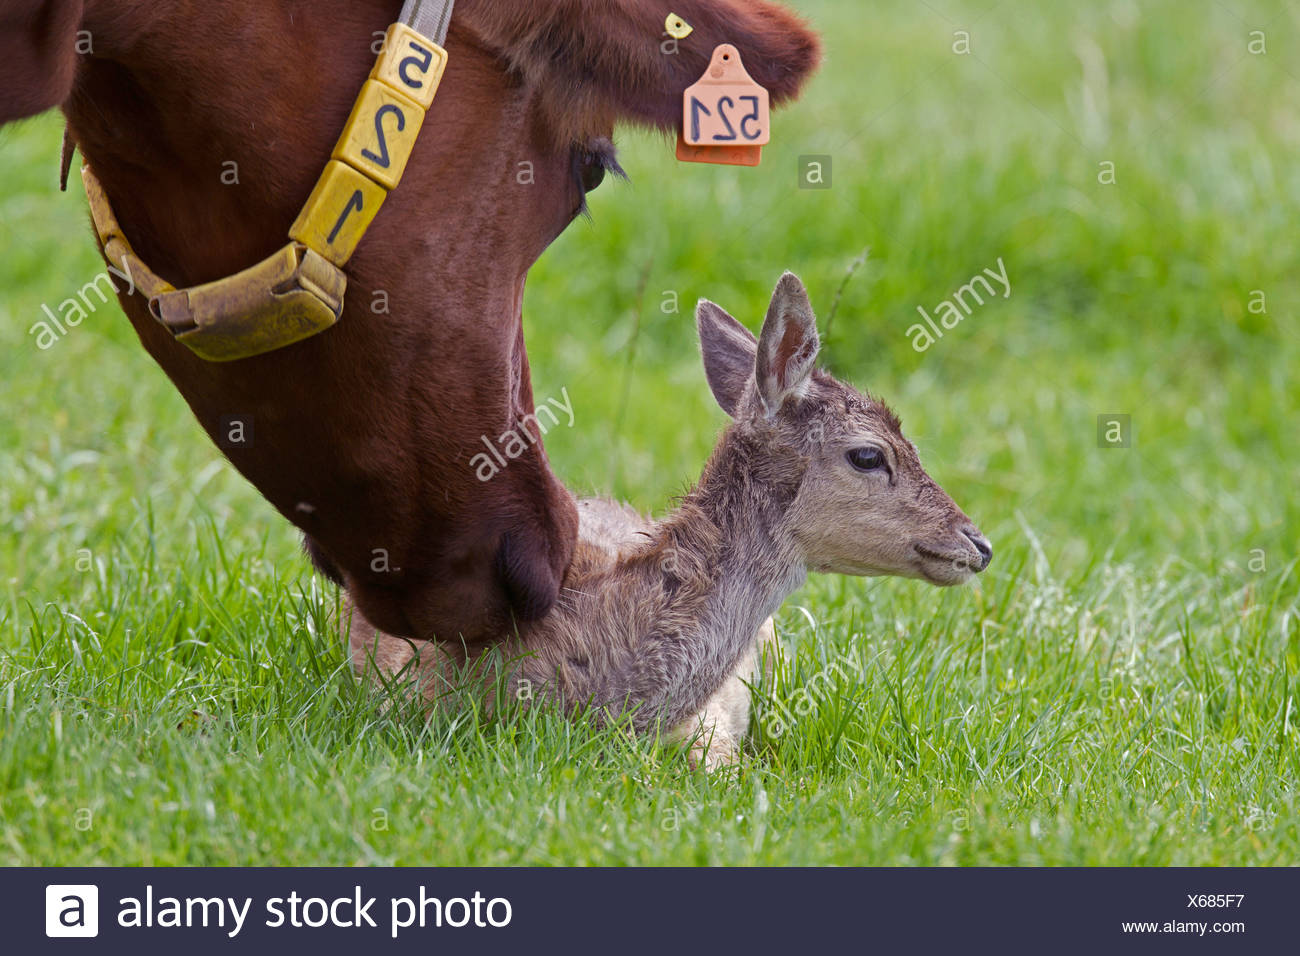 fallow deer (Dama dama, Cervus dama), fallow deer calf in a pasture together with domestic cattle, Germany, Schleswig-Holstein Stock Photo